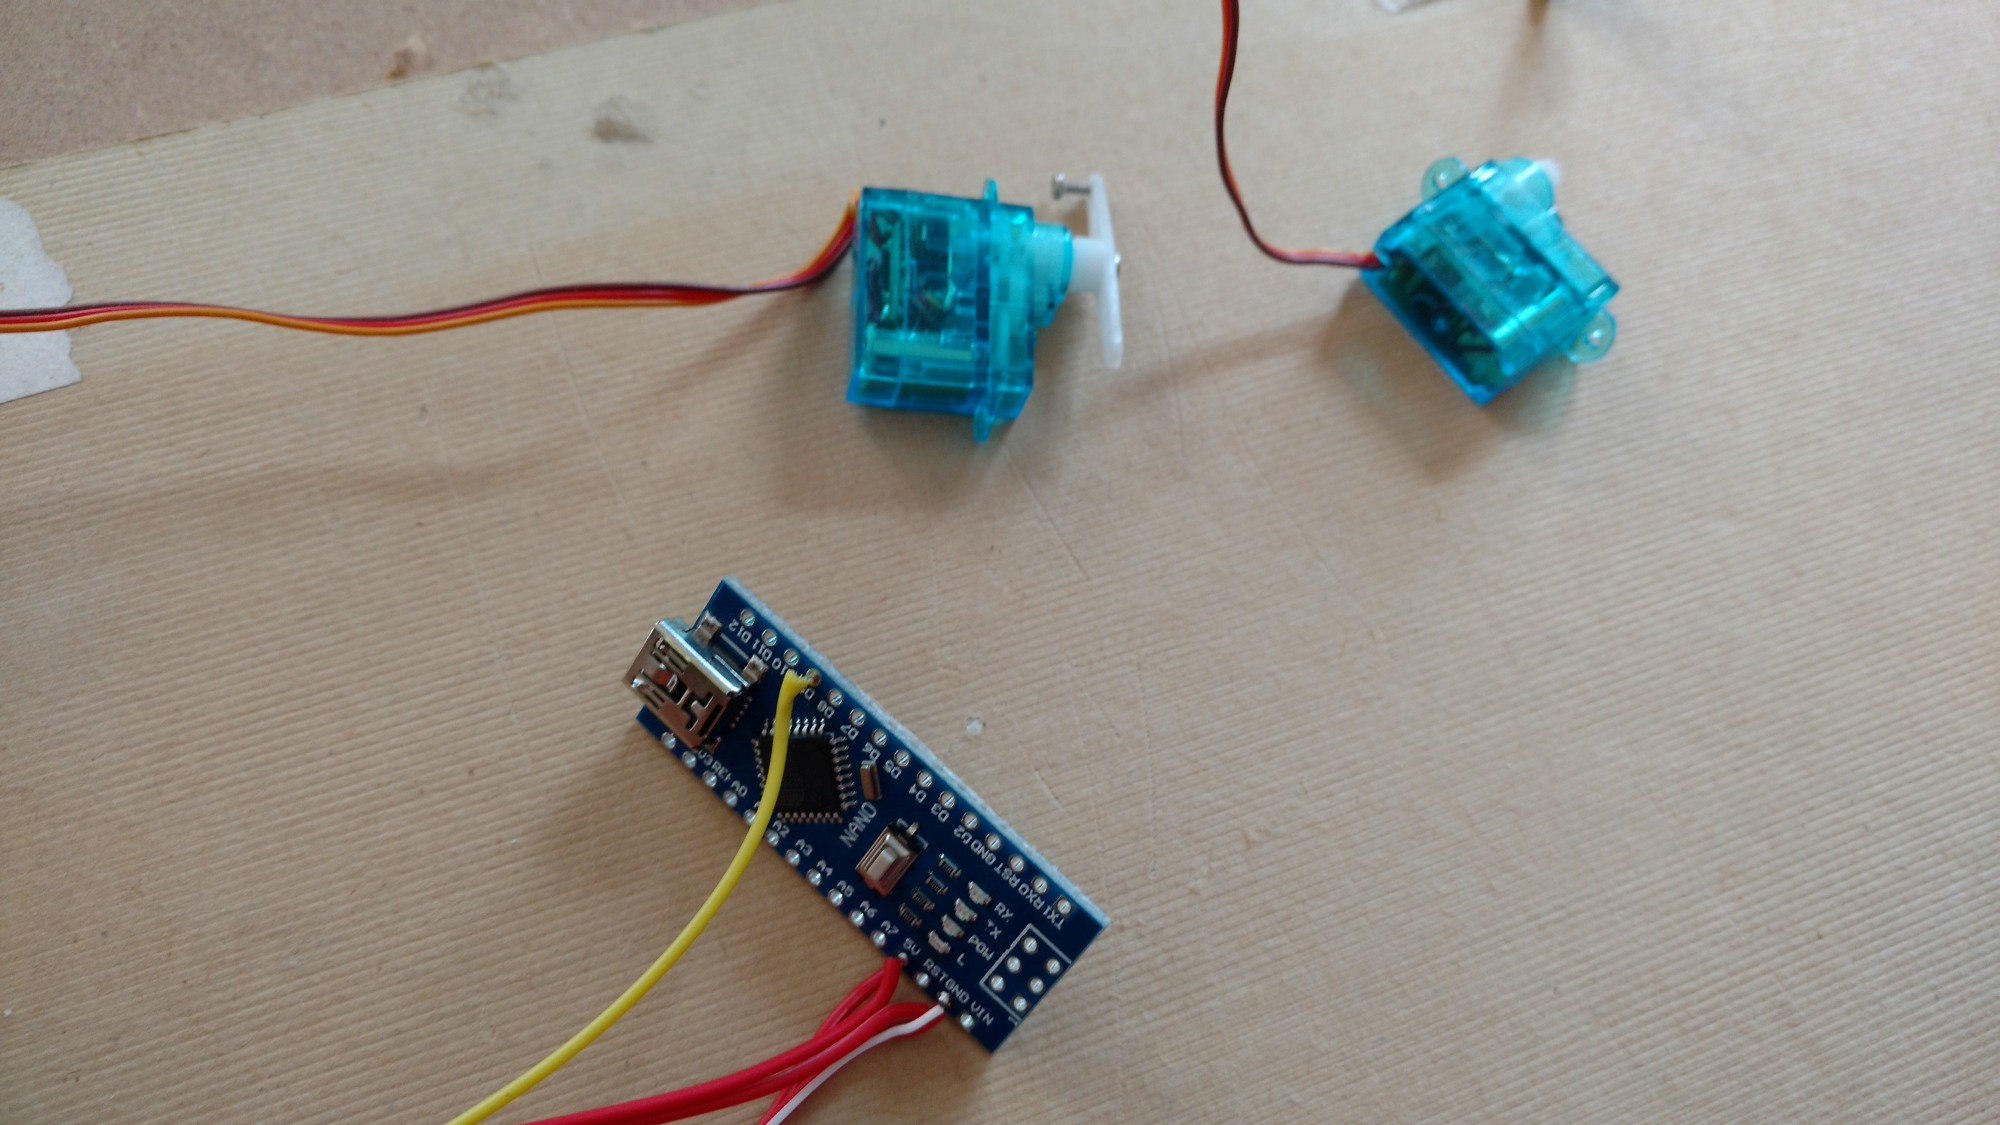 Sonic Robots Learning Experiments With Tlc5940 And Arduino Build Circuit Haunted Eyes 1 11